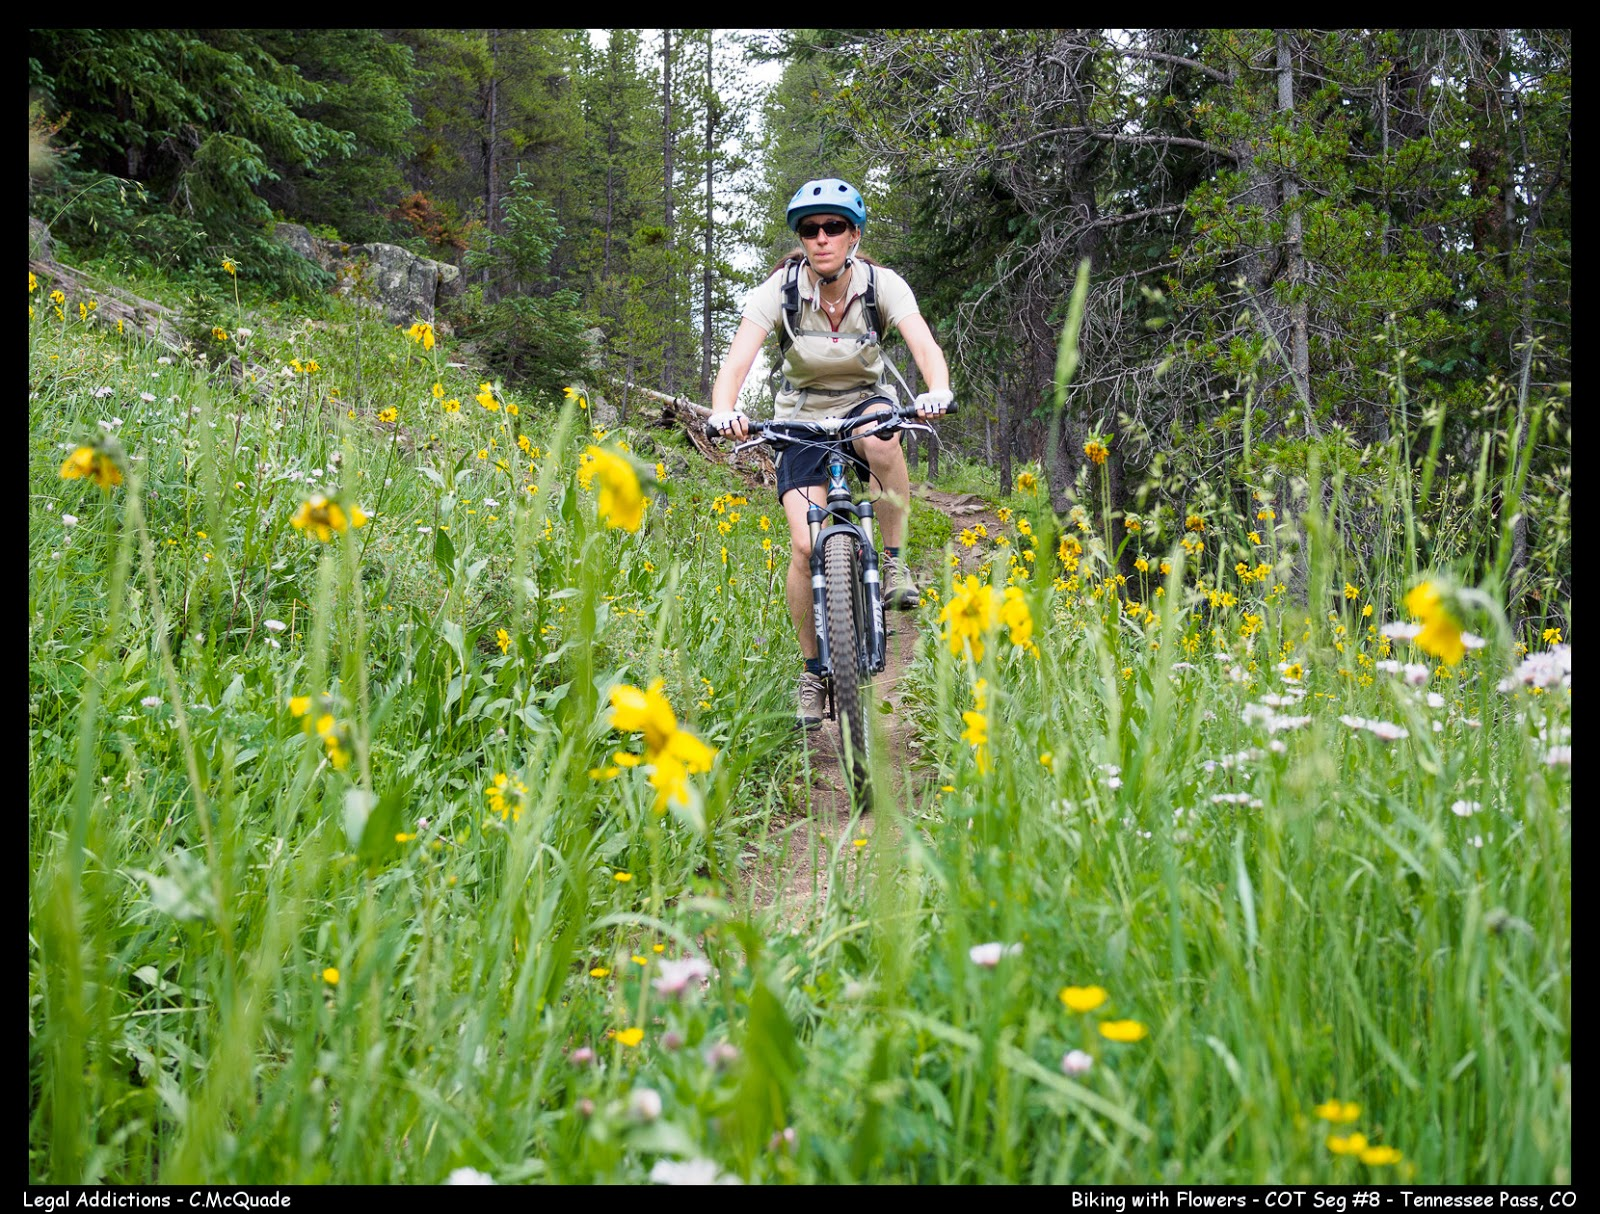 biking+with+flowers-20144702.jpg